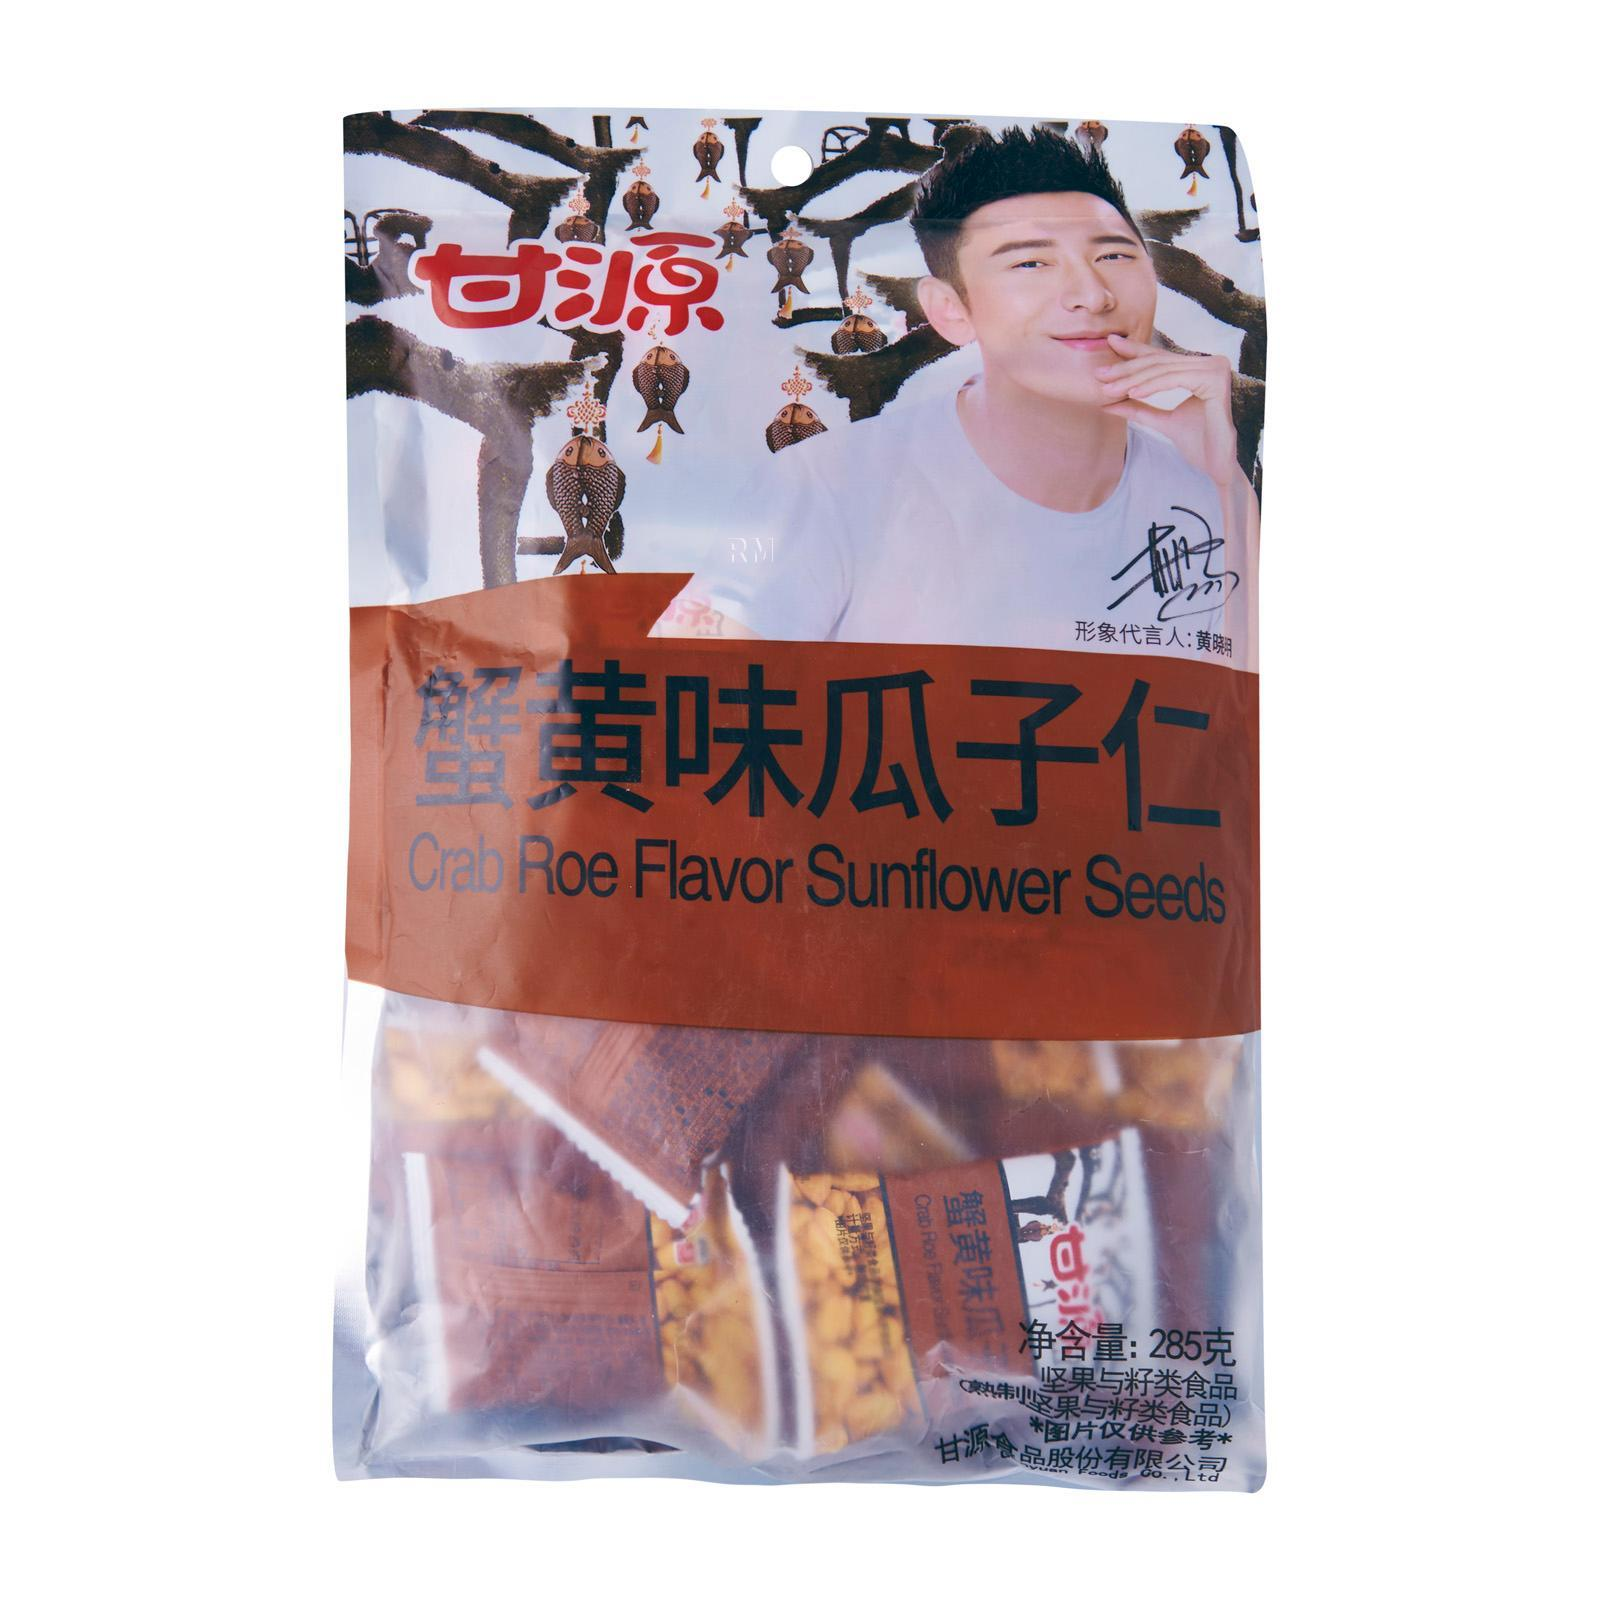 Gan Yuan Crab Roe Sunflower Seeds